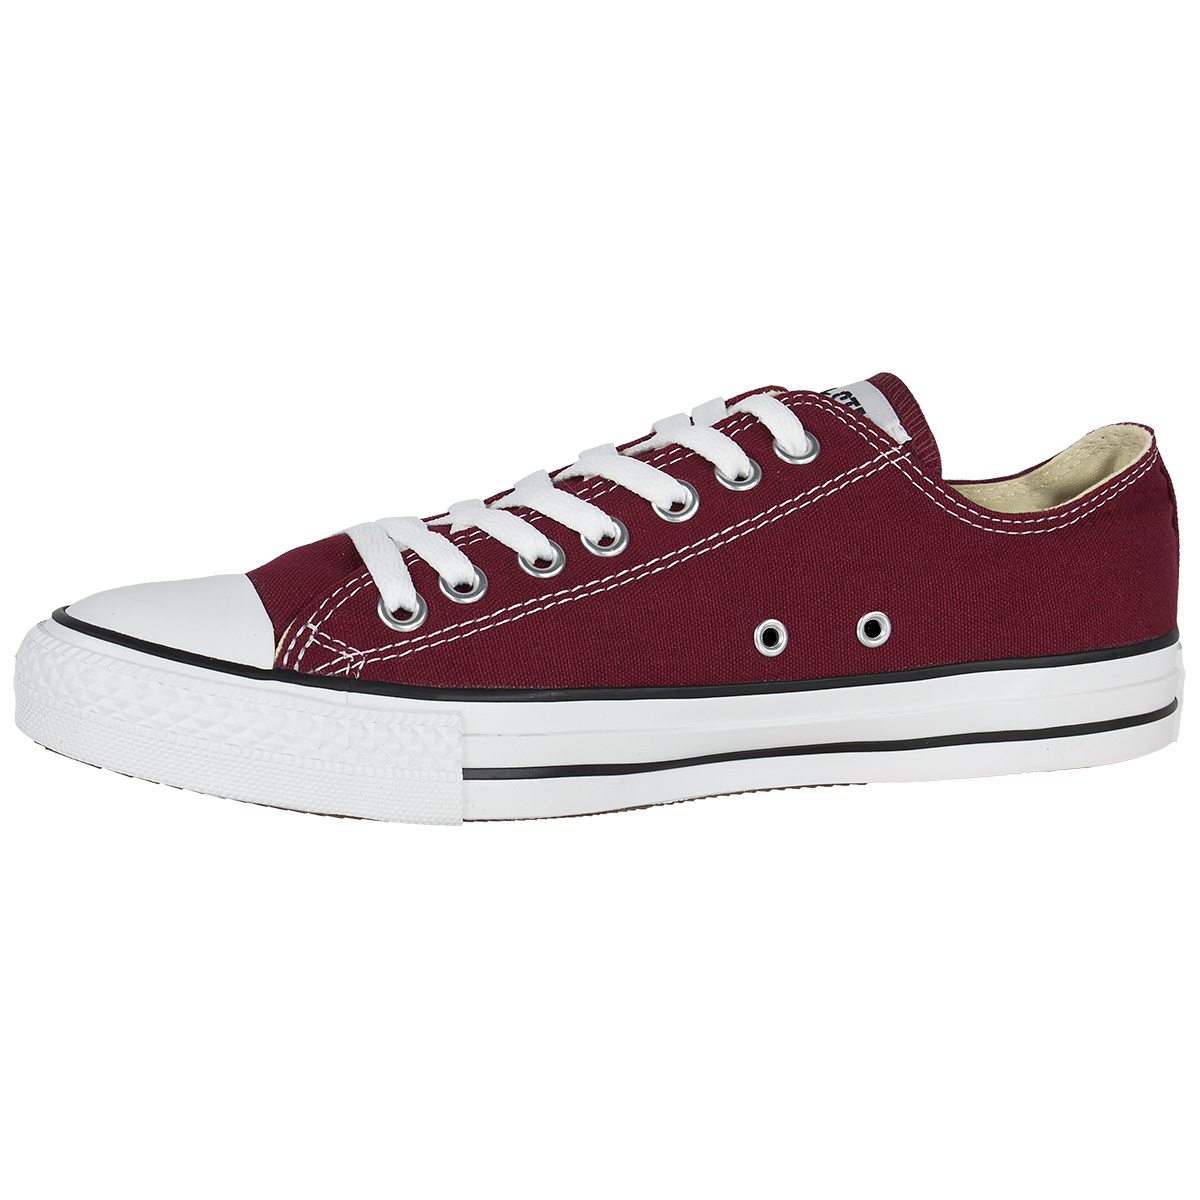 Converse-Chuck-Taylor-All-Star-Ox-Shoes-Sneakers-Low-Classic-Basic